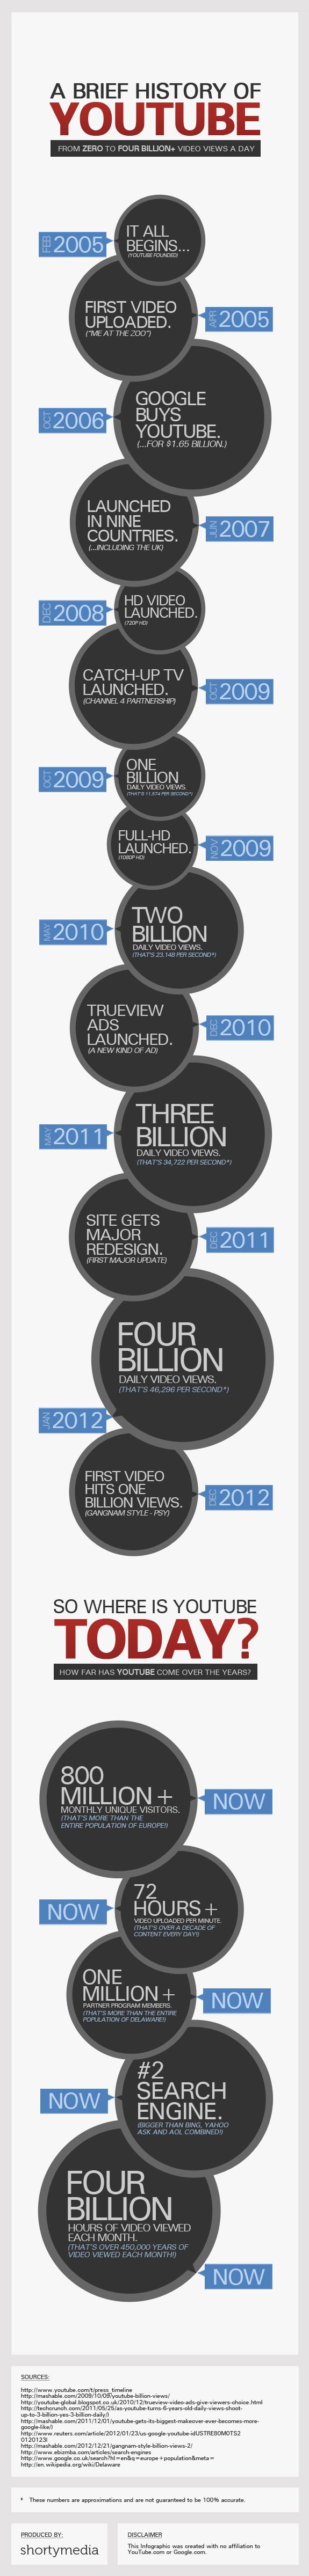 A Brief History Of YouTube [INFOGRAPHIC]